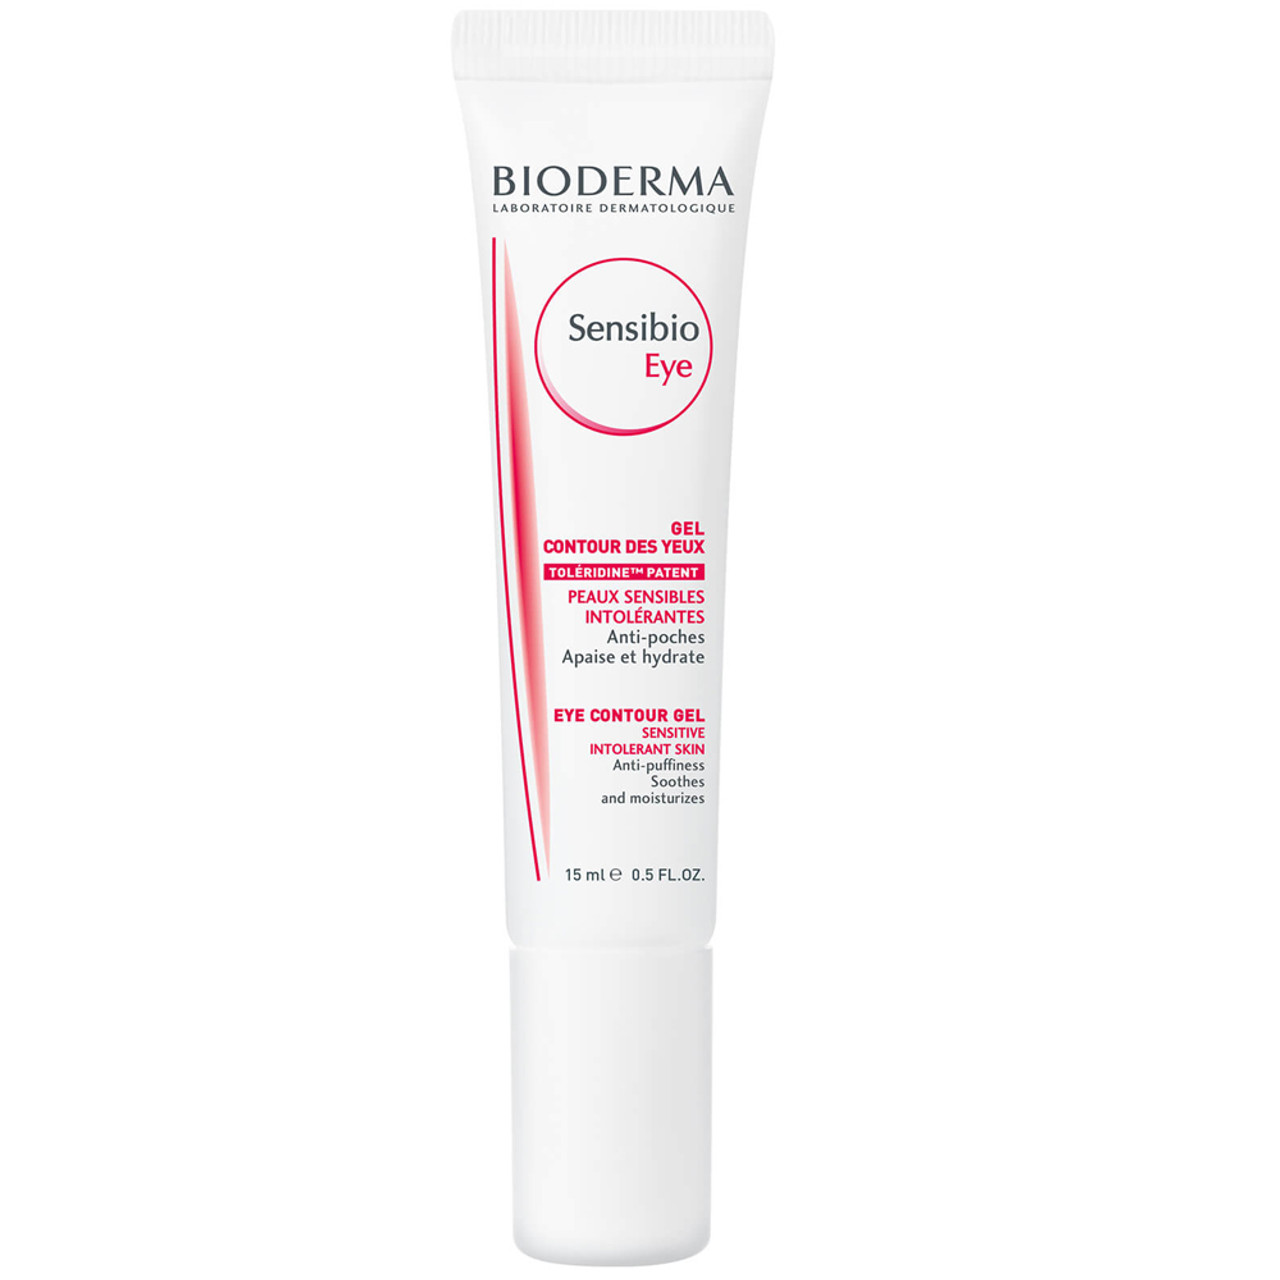 Bioderma Sensibio Gel Eye Contour